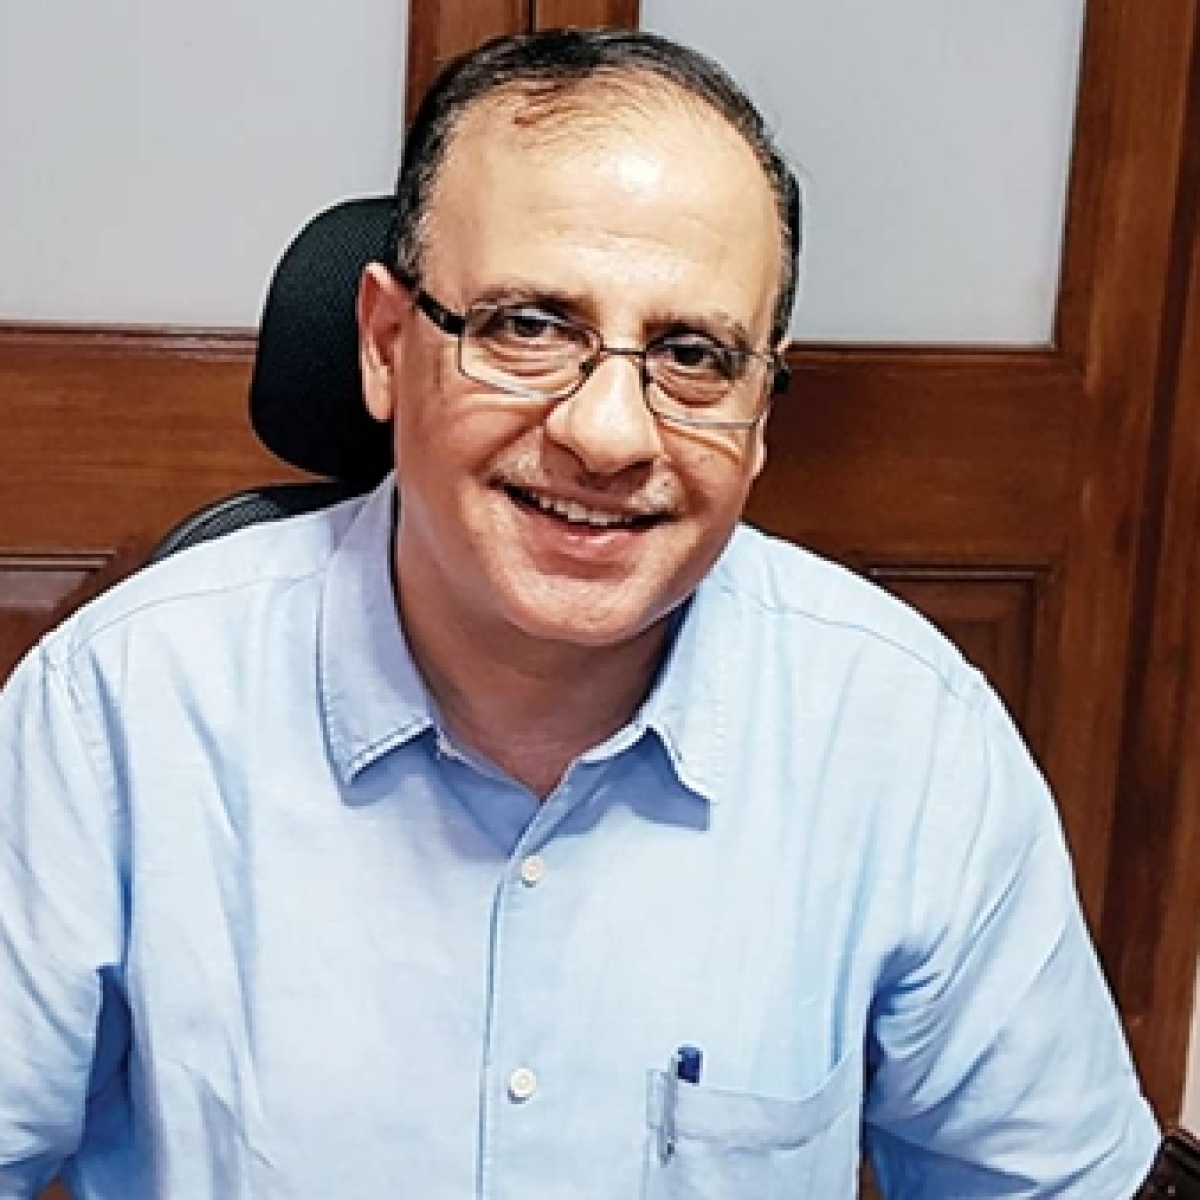 First reported on FPJ: Maharashtra Chief Secretary Ajoy Mehta gets extension up to June 30